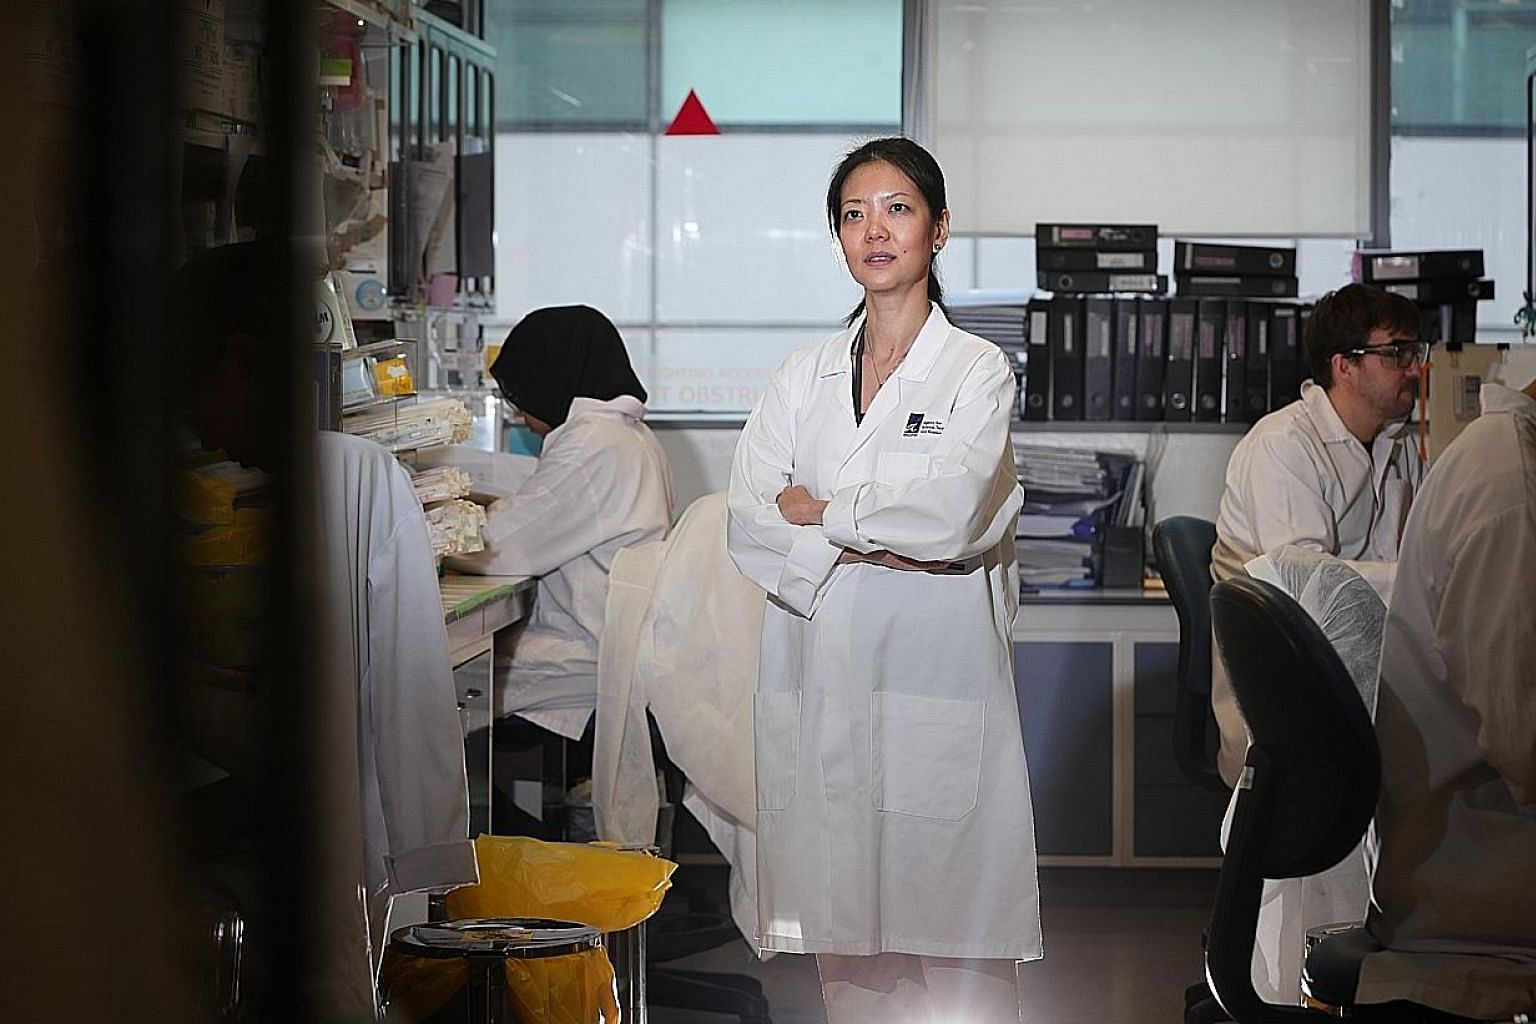 The findings were made by scientists from the National Centre for Infectious Diseases and the Agency for Science, Technology and Research. ST PHOTO: SHINTARO TAY Professor Lisa Ng, senior principal investigator at A*Star's Singapore Immunology Networ